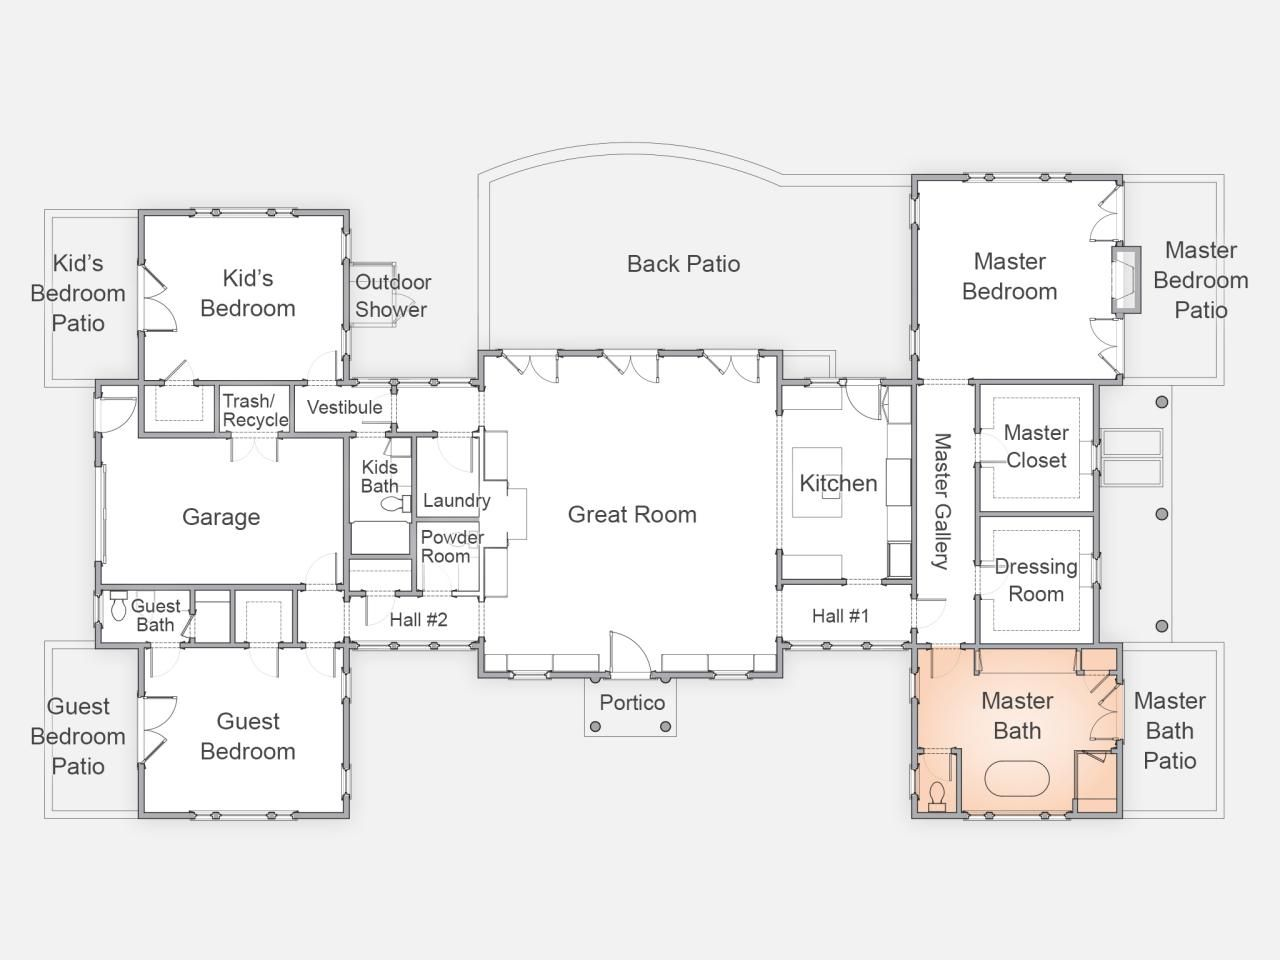 Hgtv Dream Home 2017 Floor Plan Building